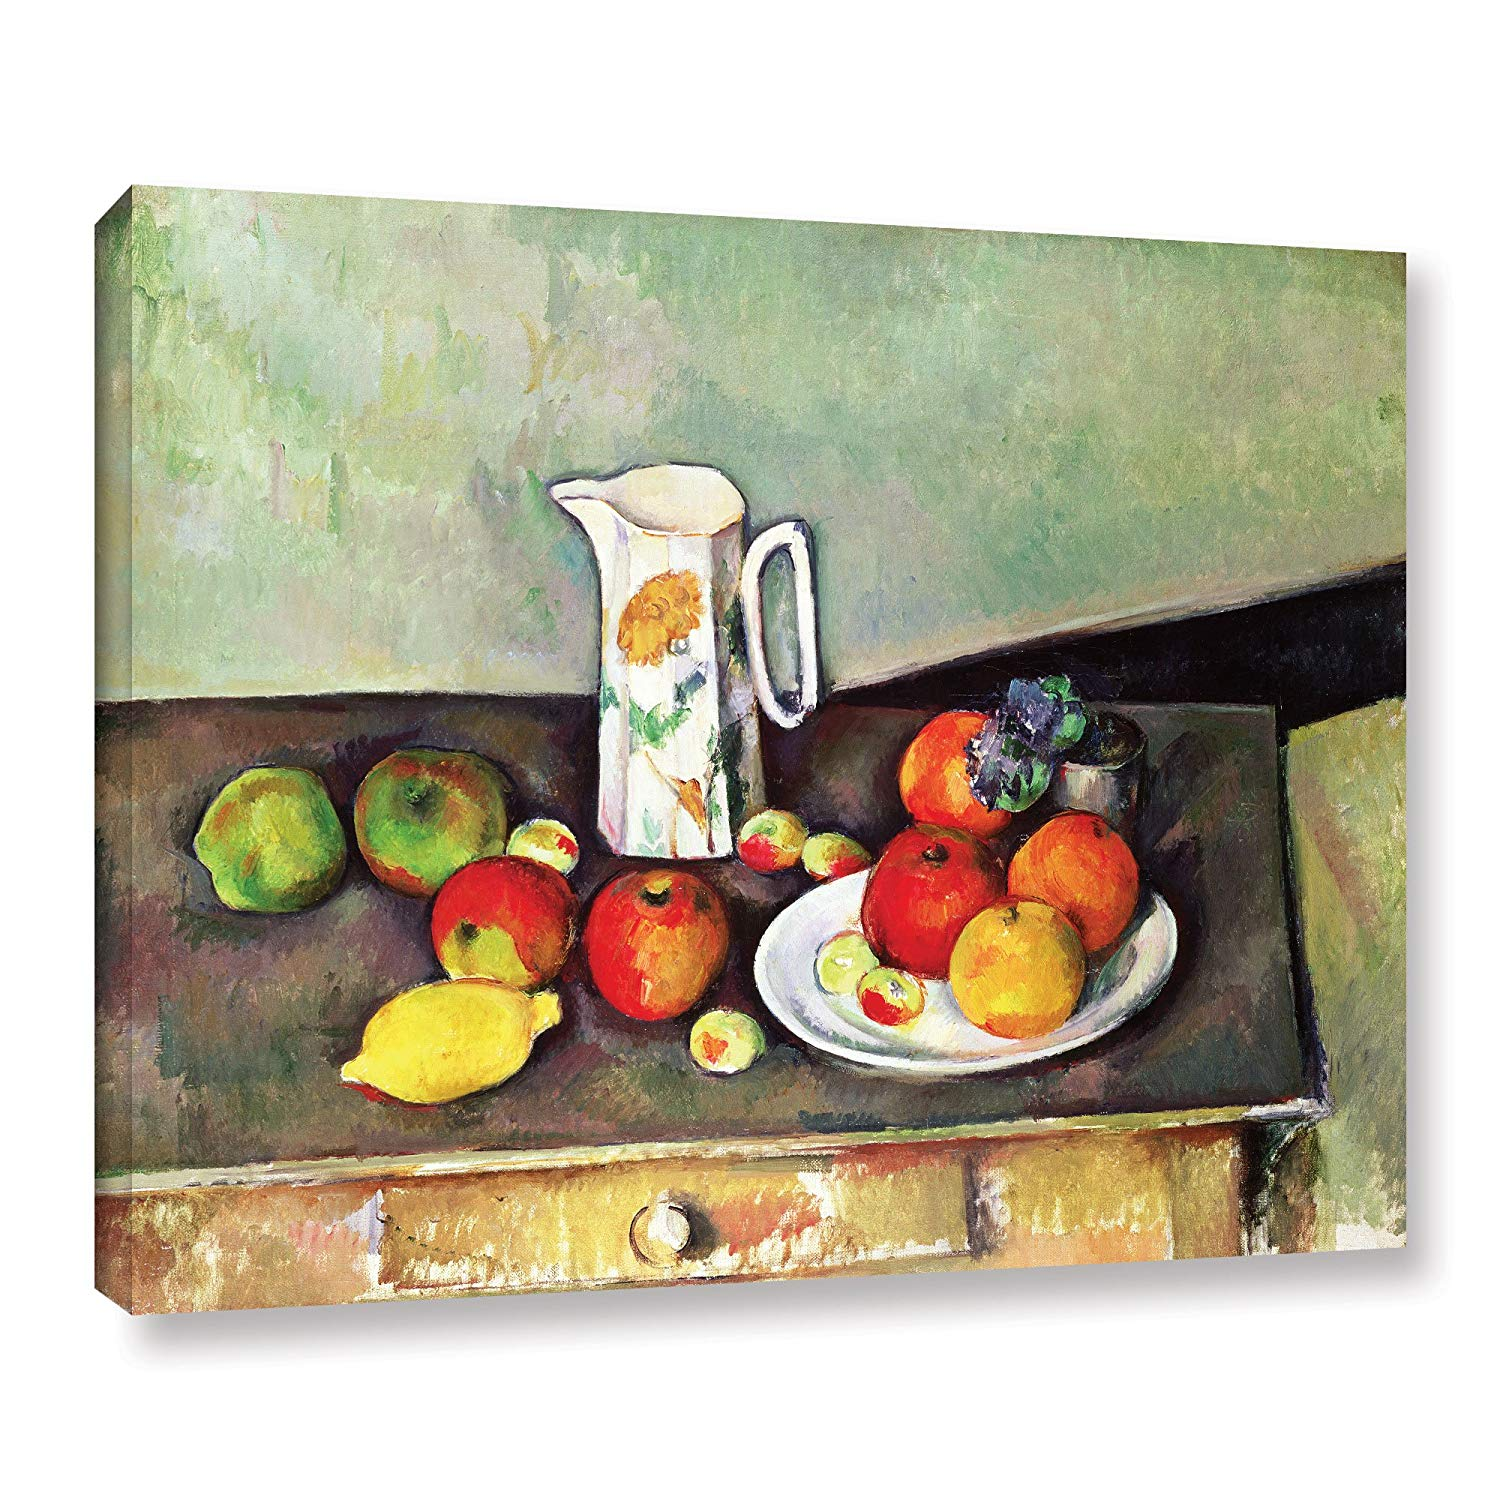 ArtWall 'Still Life with Milk Jug and Fruit' Gallery-Wrapped Canvas Artwork by Paul Cezanne, 24 by 32-Inch